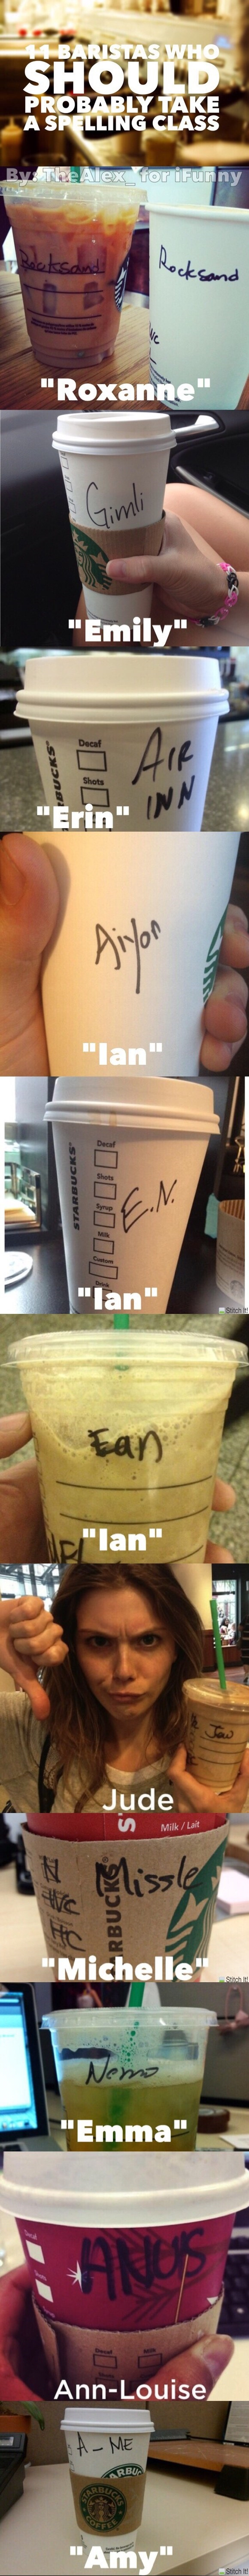 dunny-compilation-starbucks-name-spelling